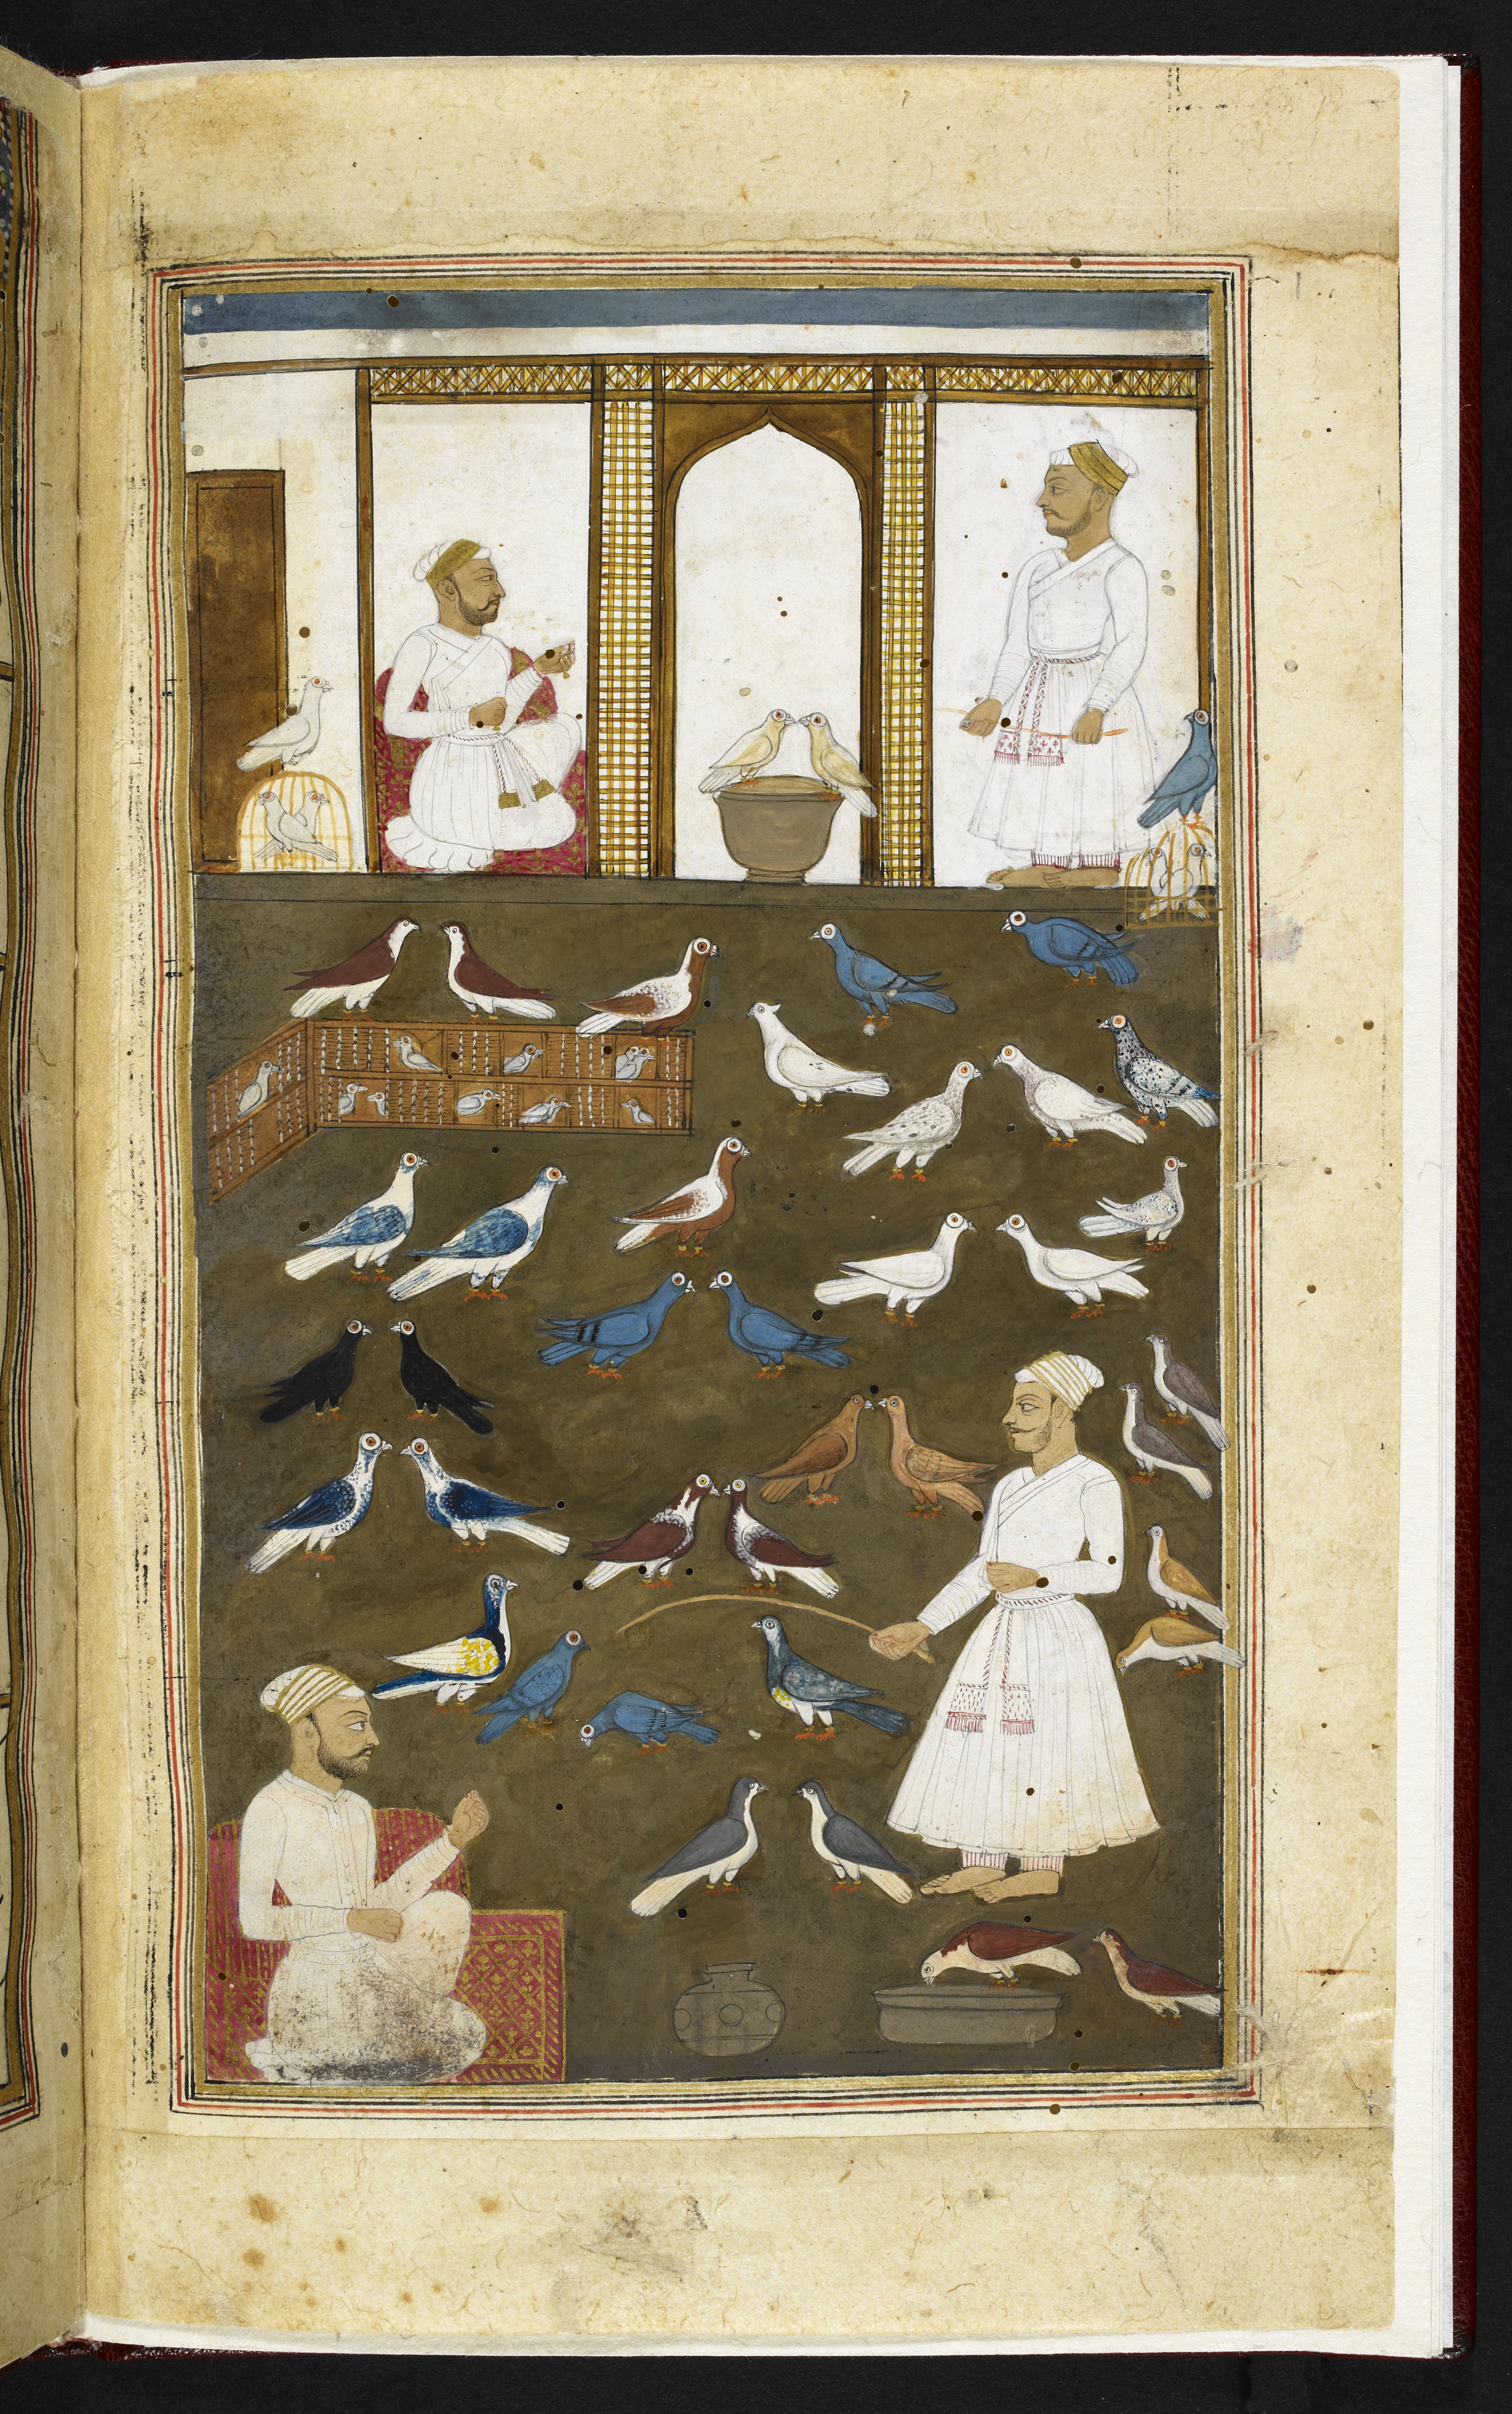 Instructional poem for pigeon-fanciers by Valih Musavi 1788 on display in Mughal India c British Library Board